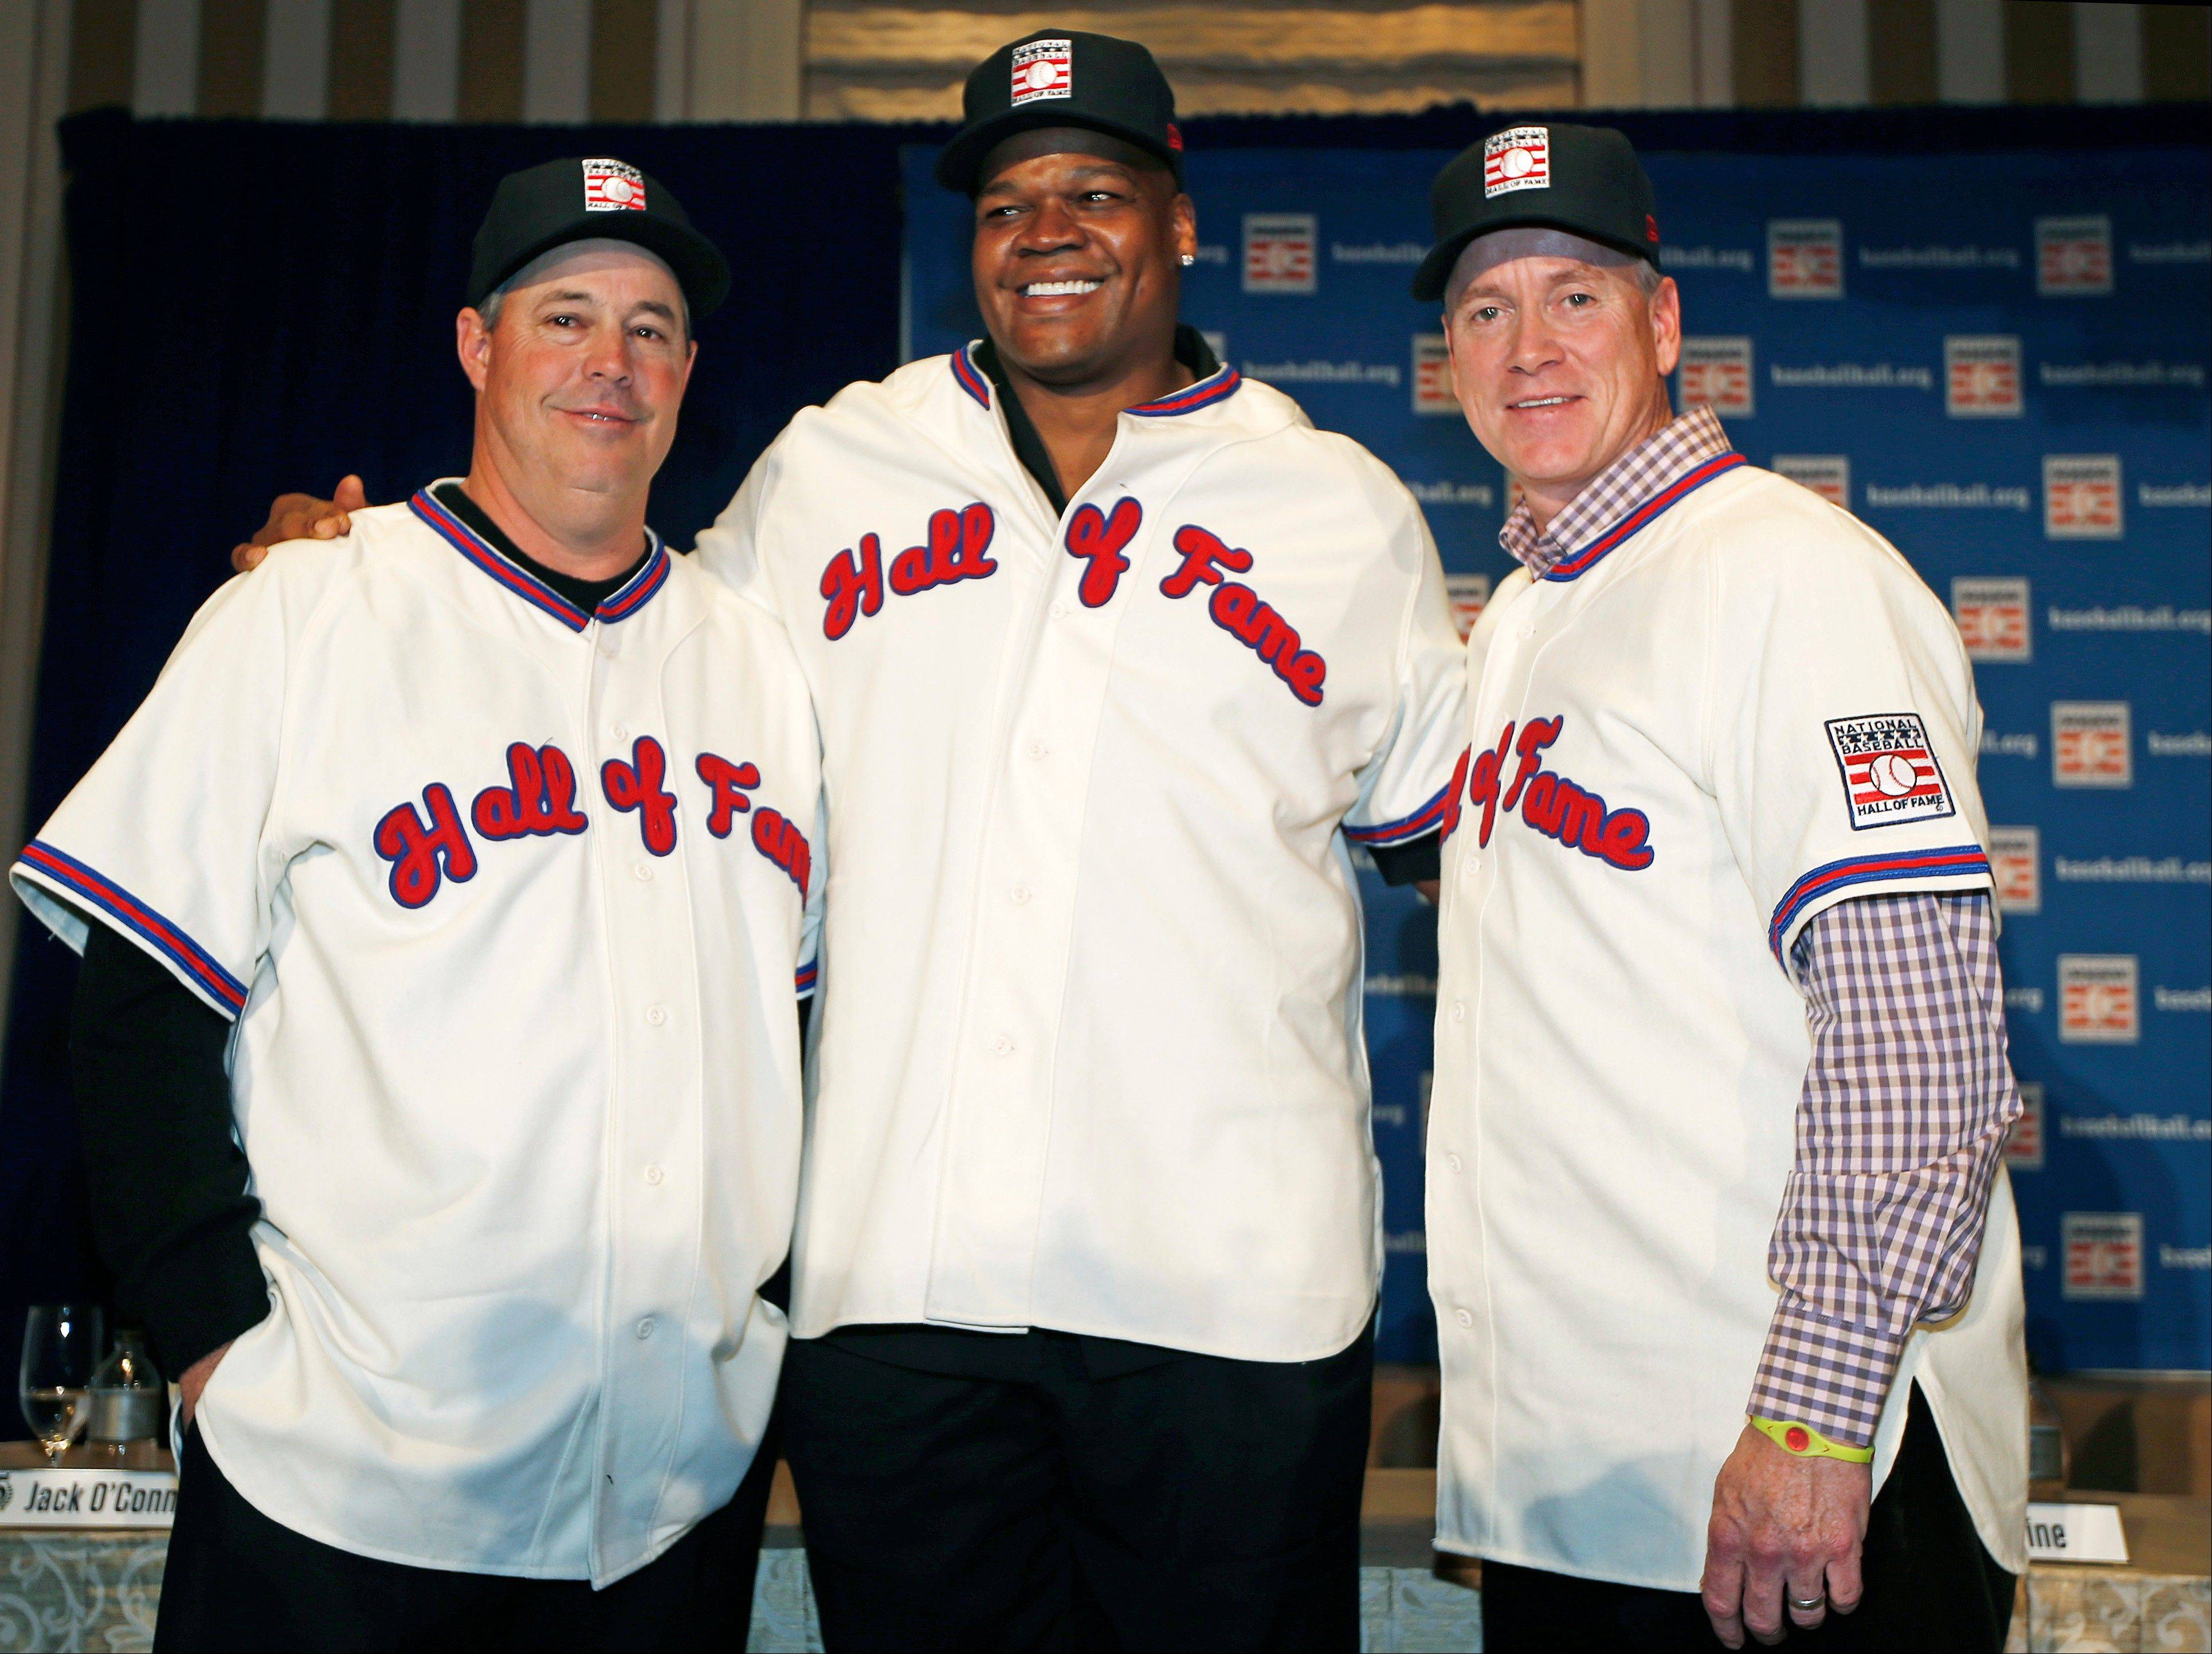 Former Atlanta Braves pitchers Greg Maddux, left, and Tom Glavine, right, pose with former White Sox slugger Frank Thomas during a press conference announcing their election into the 2014 Baseball Hall of Fame class, Thursday, Jan. 9, 2014, in New York.